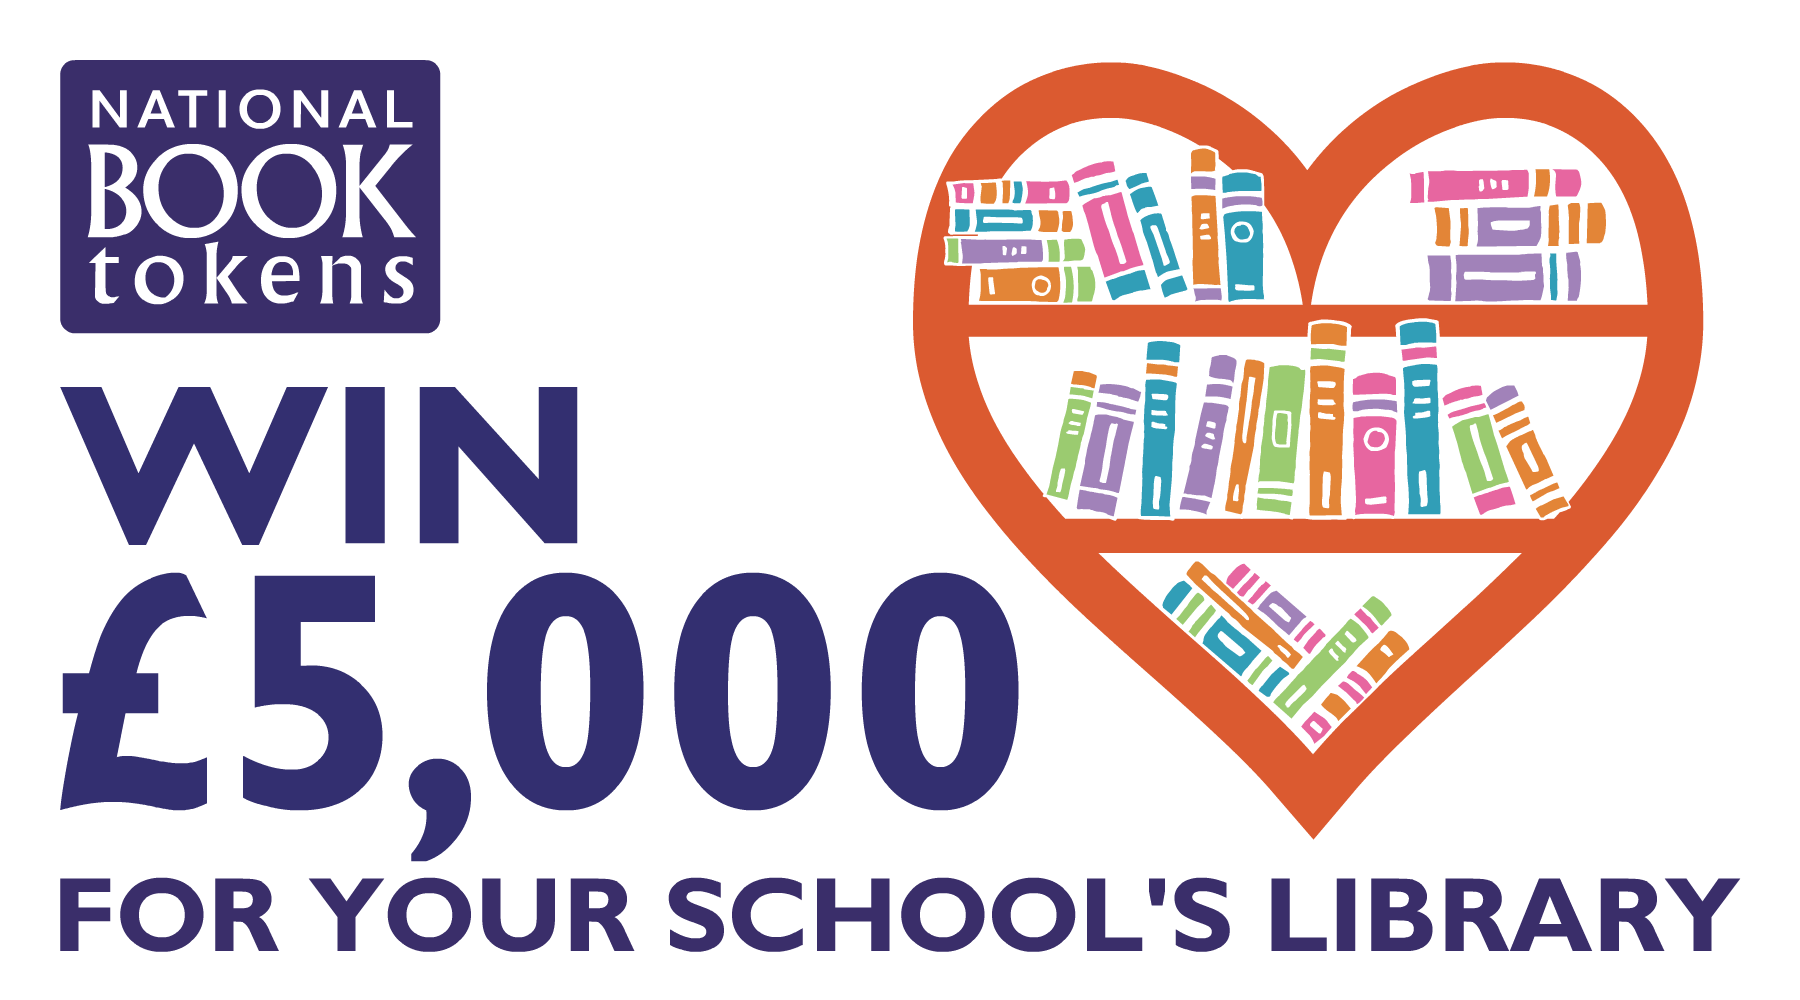 a7a001cfe640 Win £5,000 for your school library with National Book Tokens